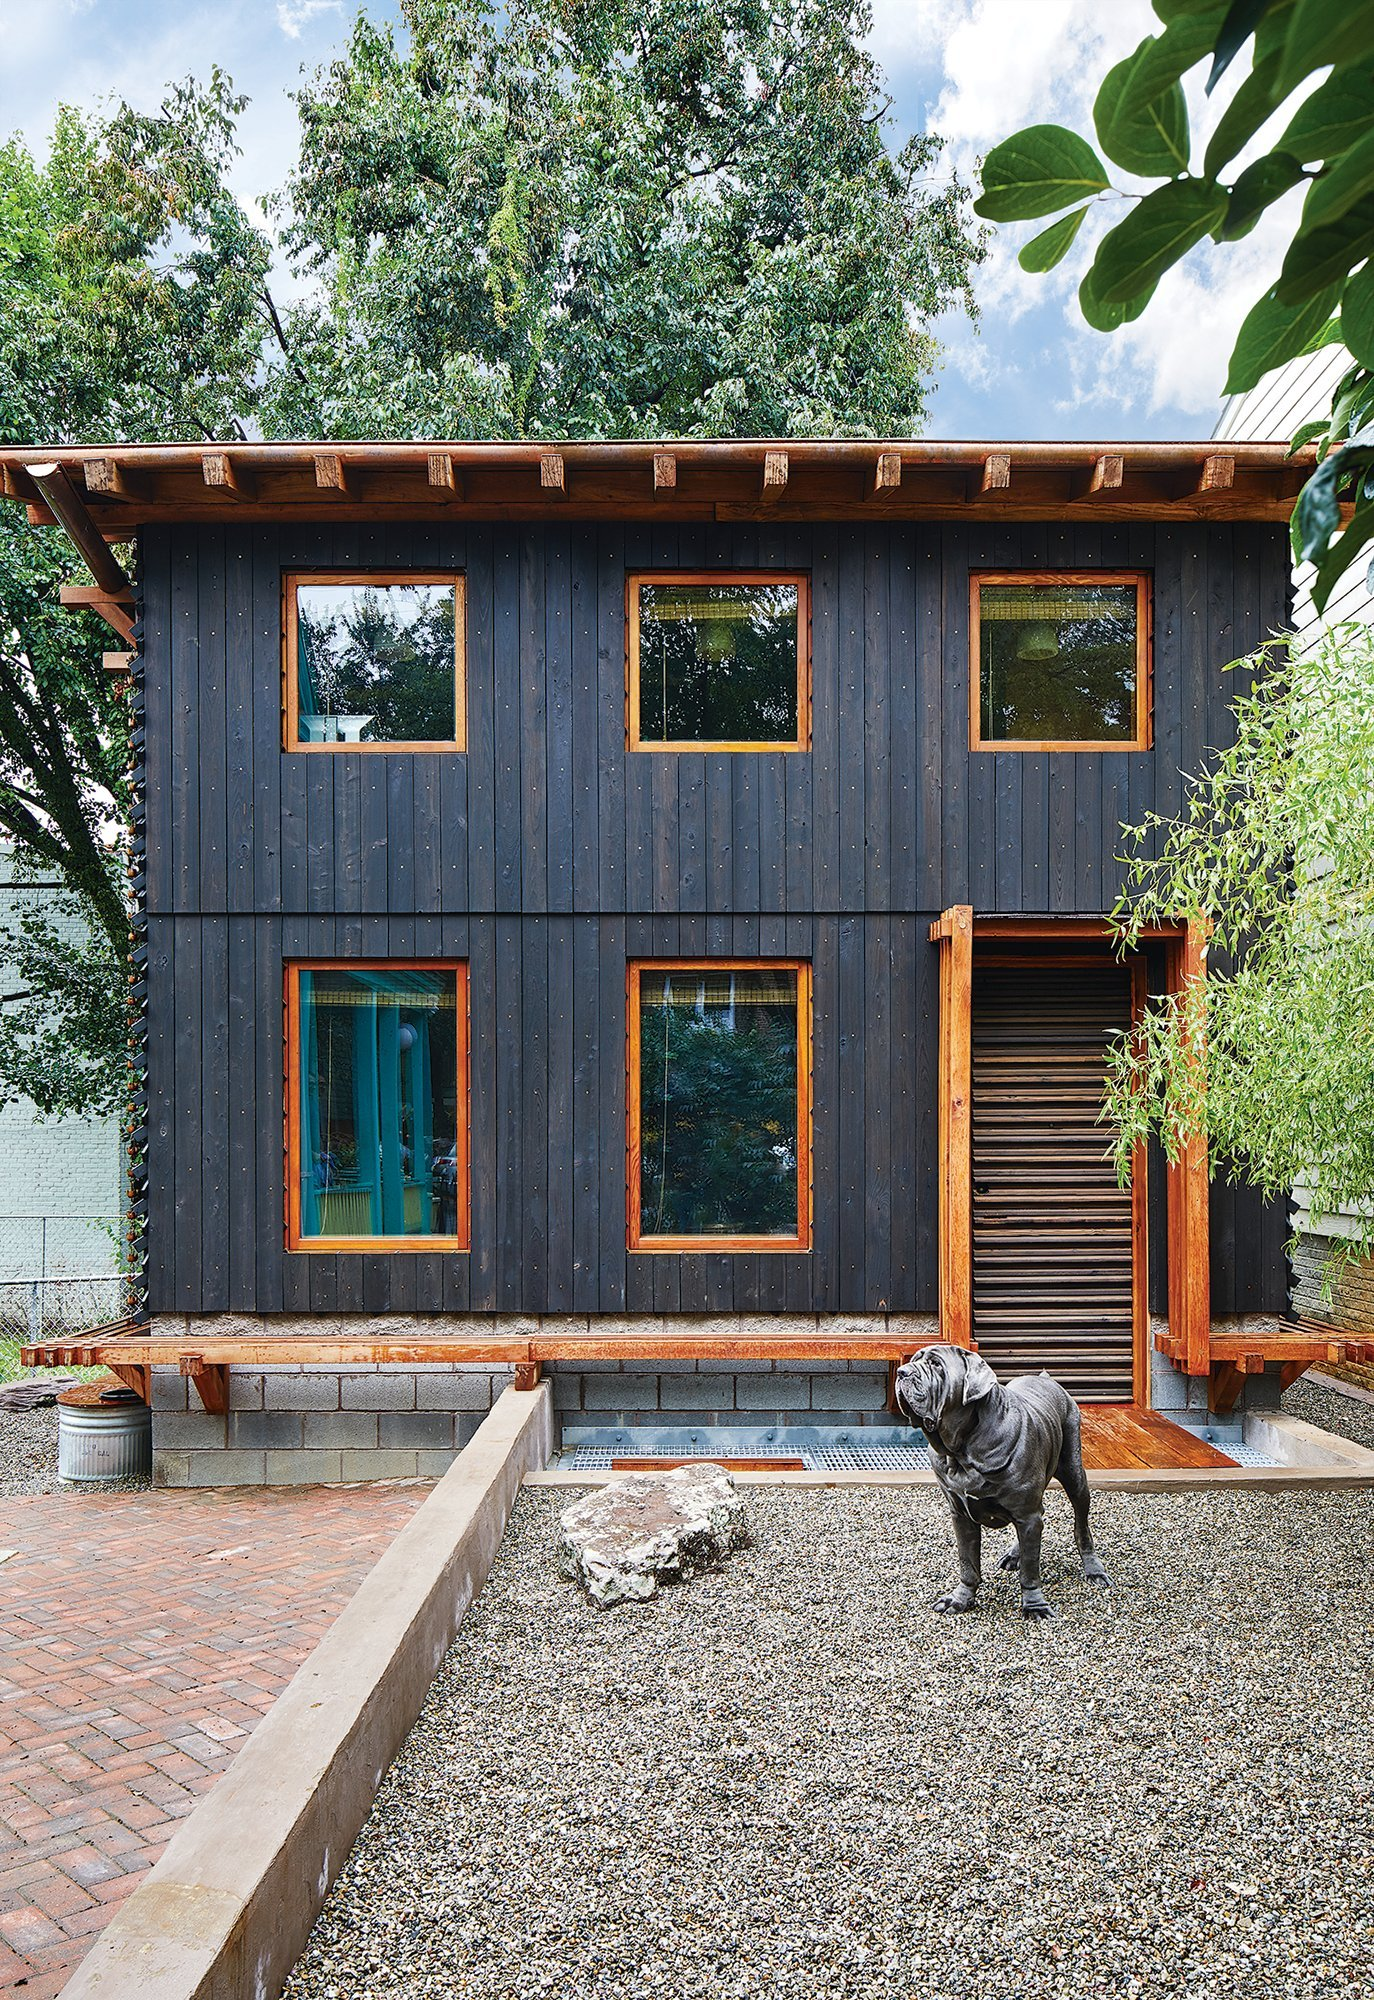 This Eco-Friendly Anacostia House Is Built Almost Entirely Out of Bamboo